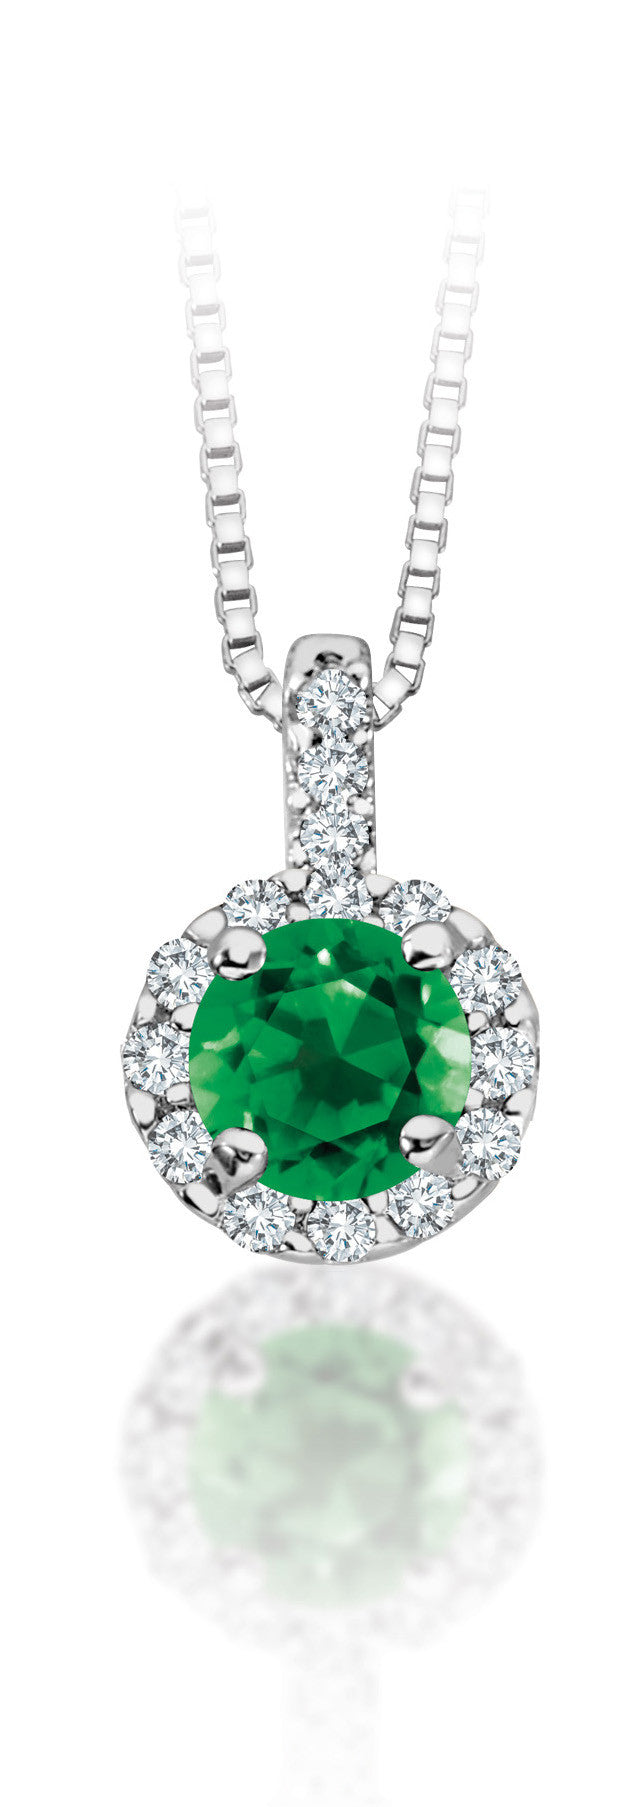 10Kt White Gold Emerald Diamond Halo Pendant